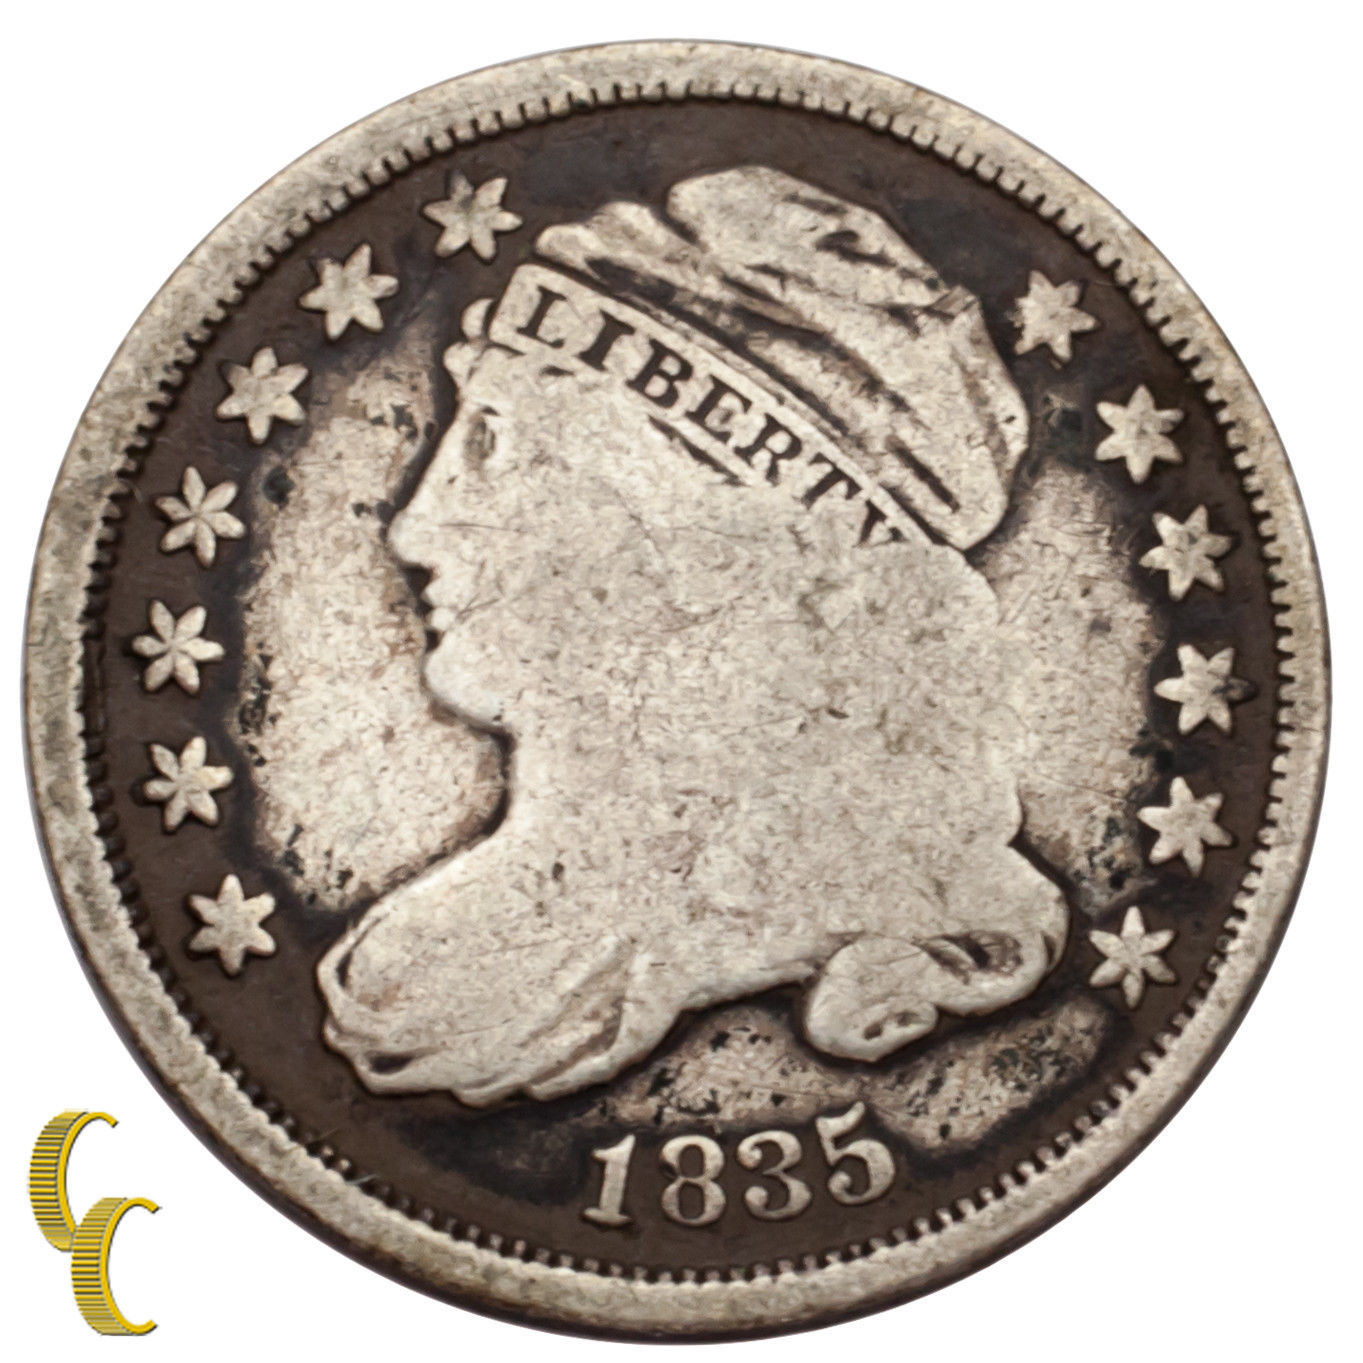 1835 Silver Capped Bust Dime 10C (Very Good, VG Condition)